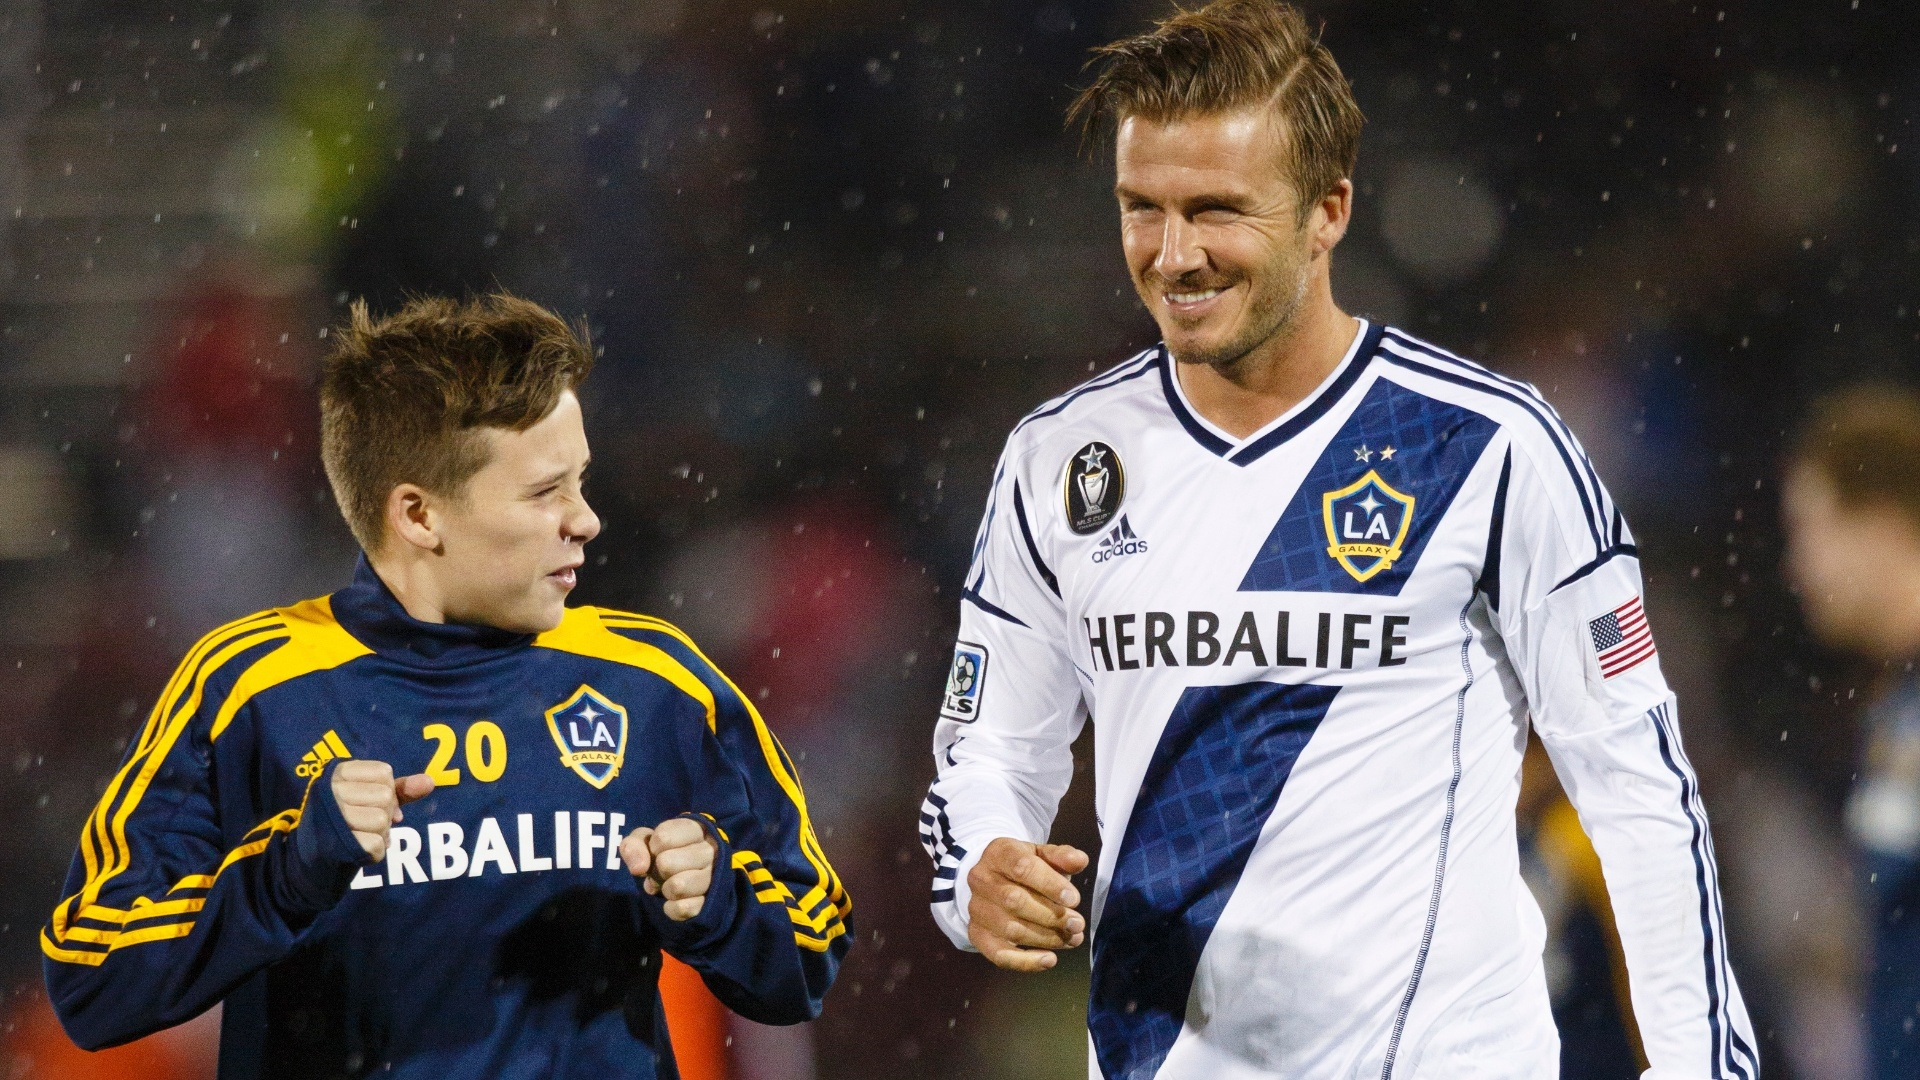 30.set.2012 - David Beckham, do Los Angeles Galaxy, se aquece ao lado do filho mais velho, Brooklyn, antes de partida contra o Colorado Rapids, pela MLS